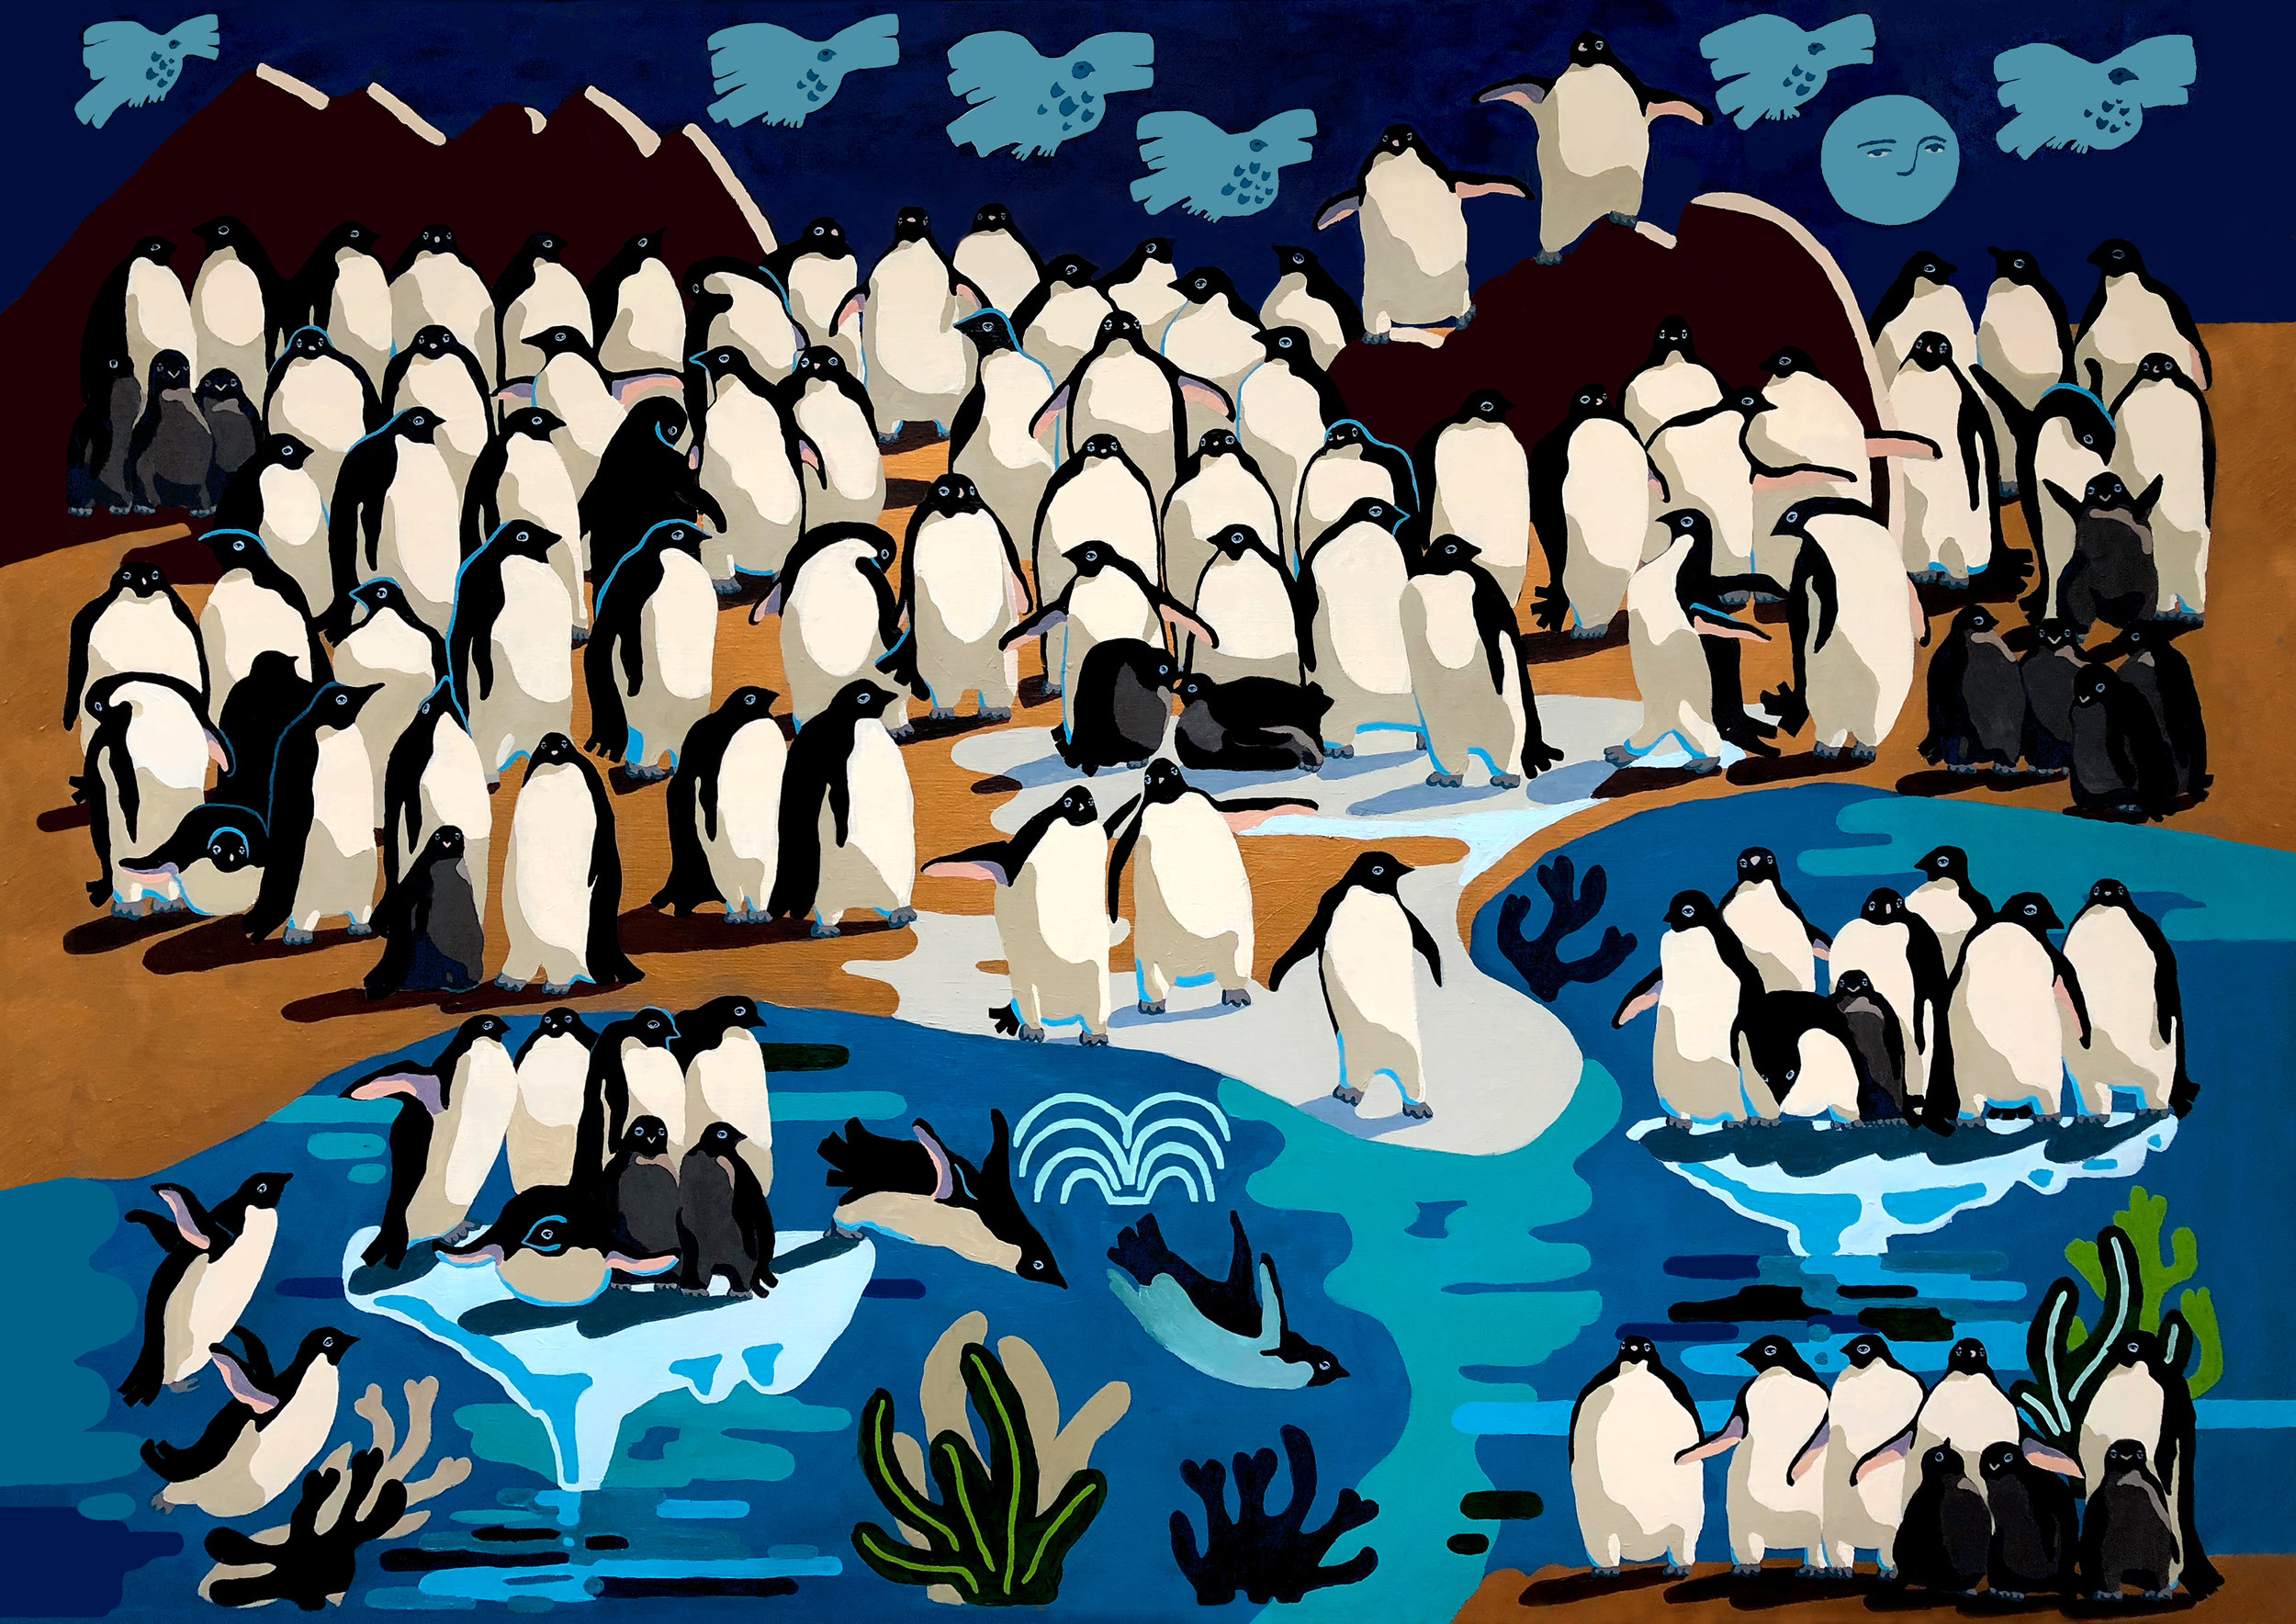 THE GRAND PAINTING OF PENGUINS, 190 x 142cm  Acrylic on linen / 2018  Crowdfunding project to raise awareness of endangered Penguins colonies in Antarctica, launched on  Kickstart er